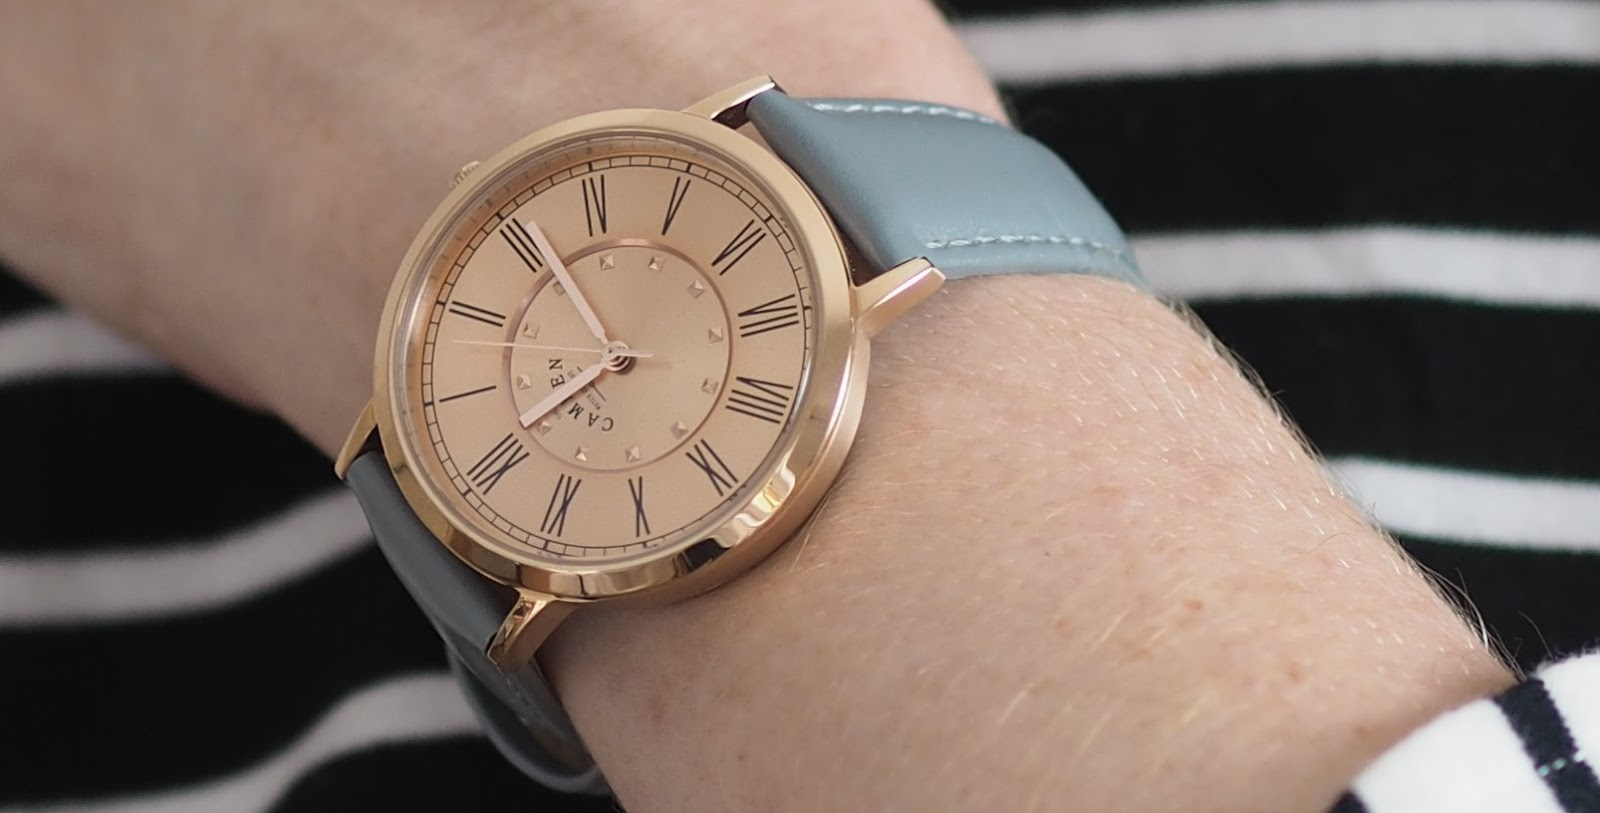 Camden watch company no 27 in grey and rose gold